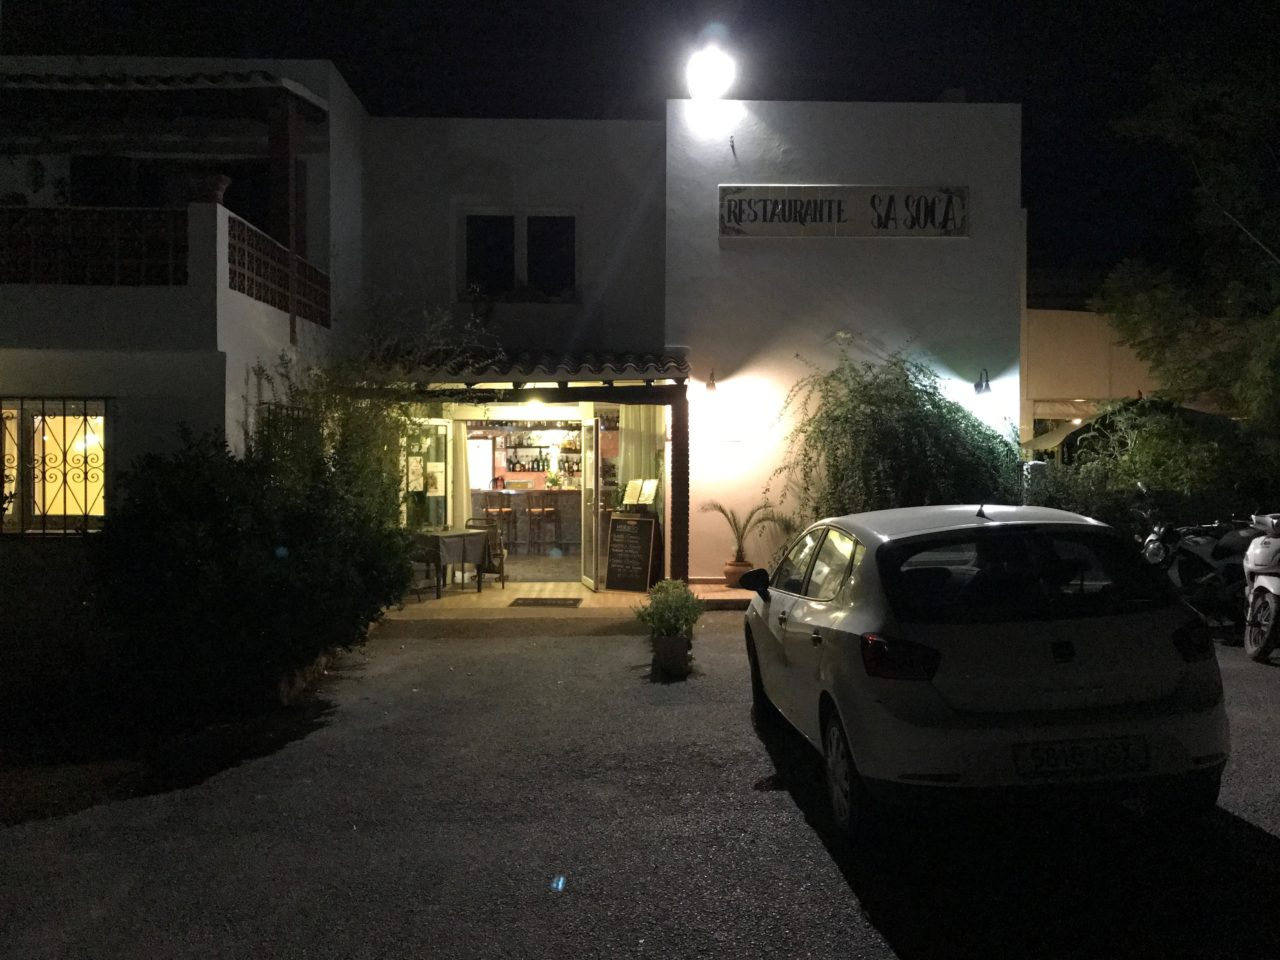 Small Restaurant Entrance At Night